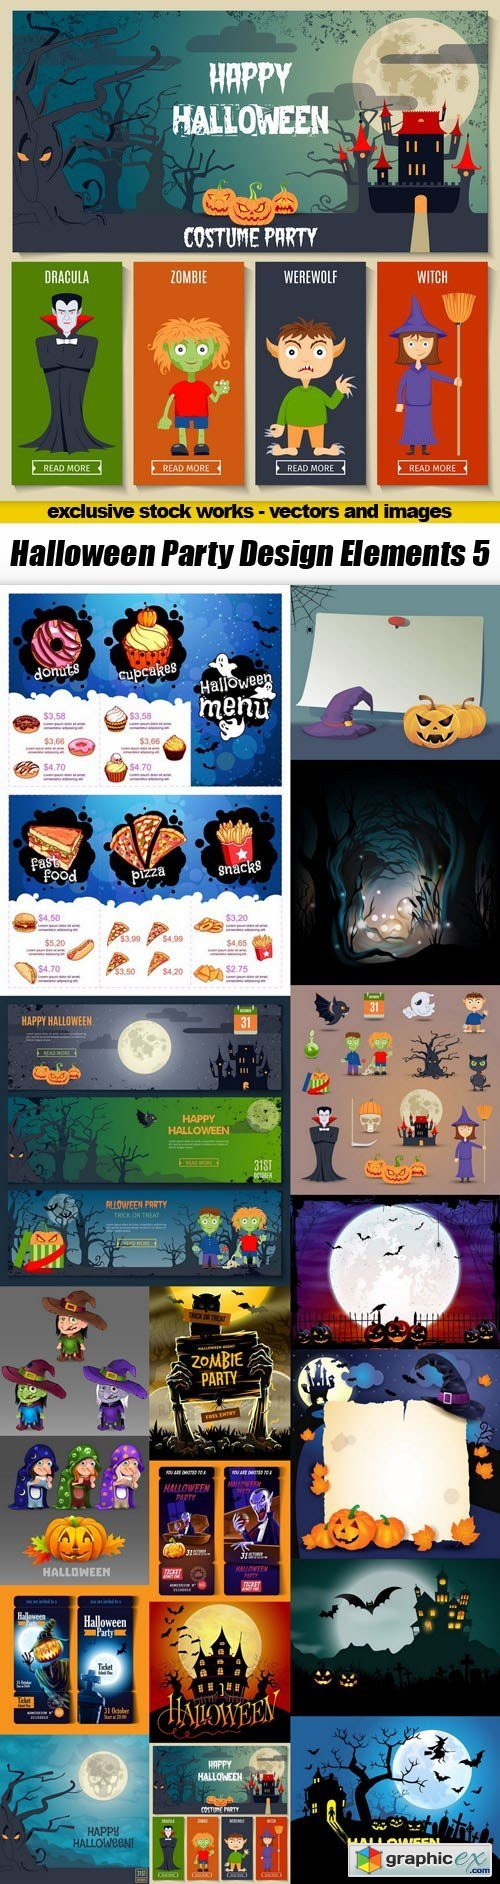 Halloween Party Design Elements 5 - 18xEPS